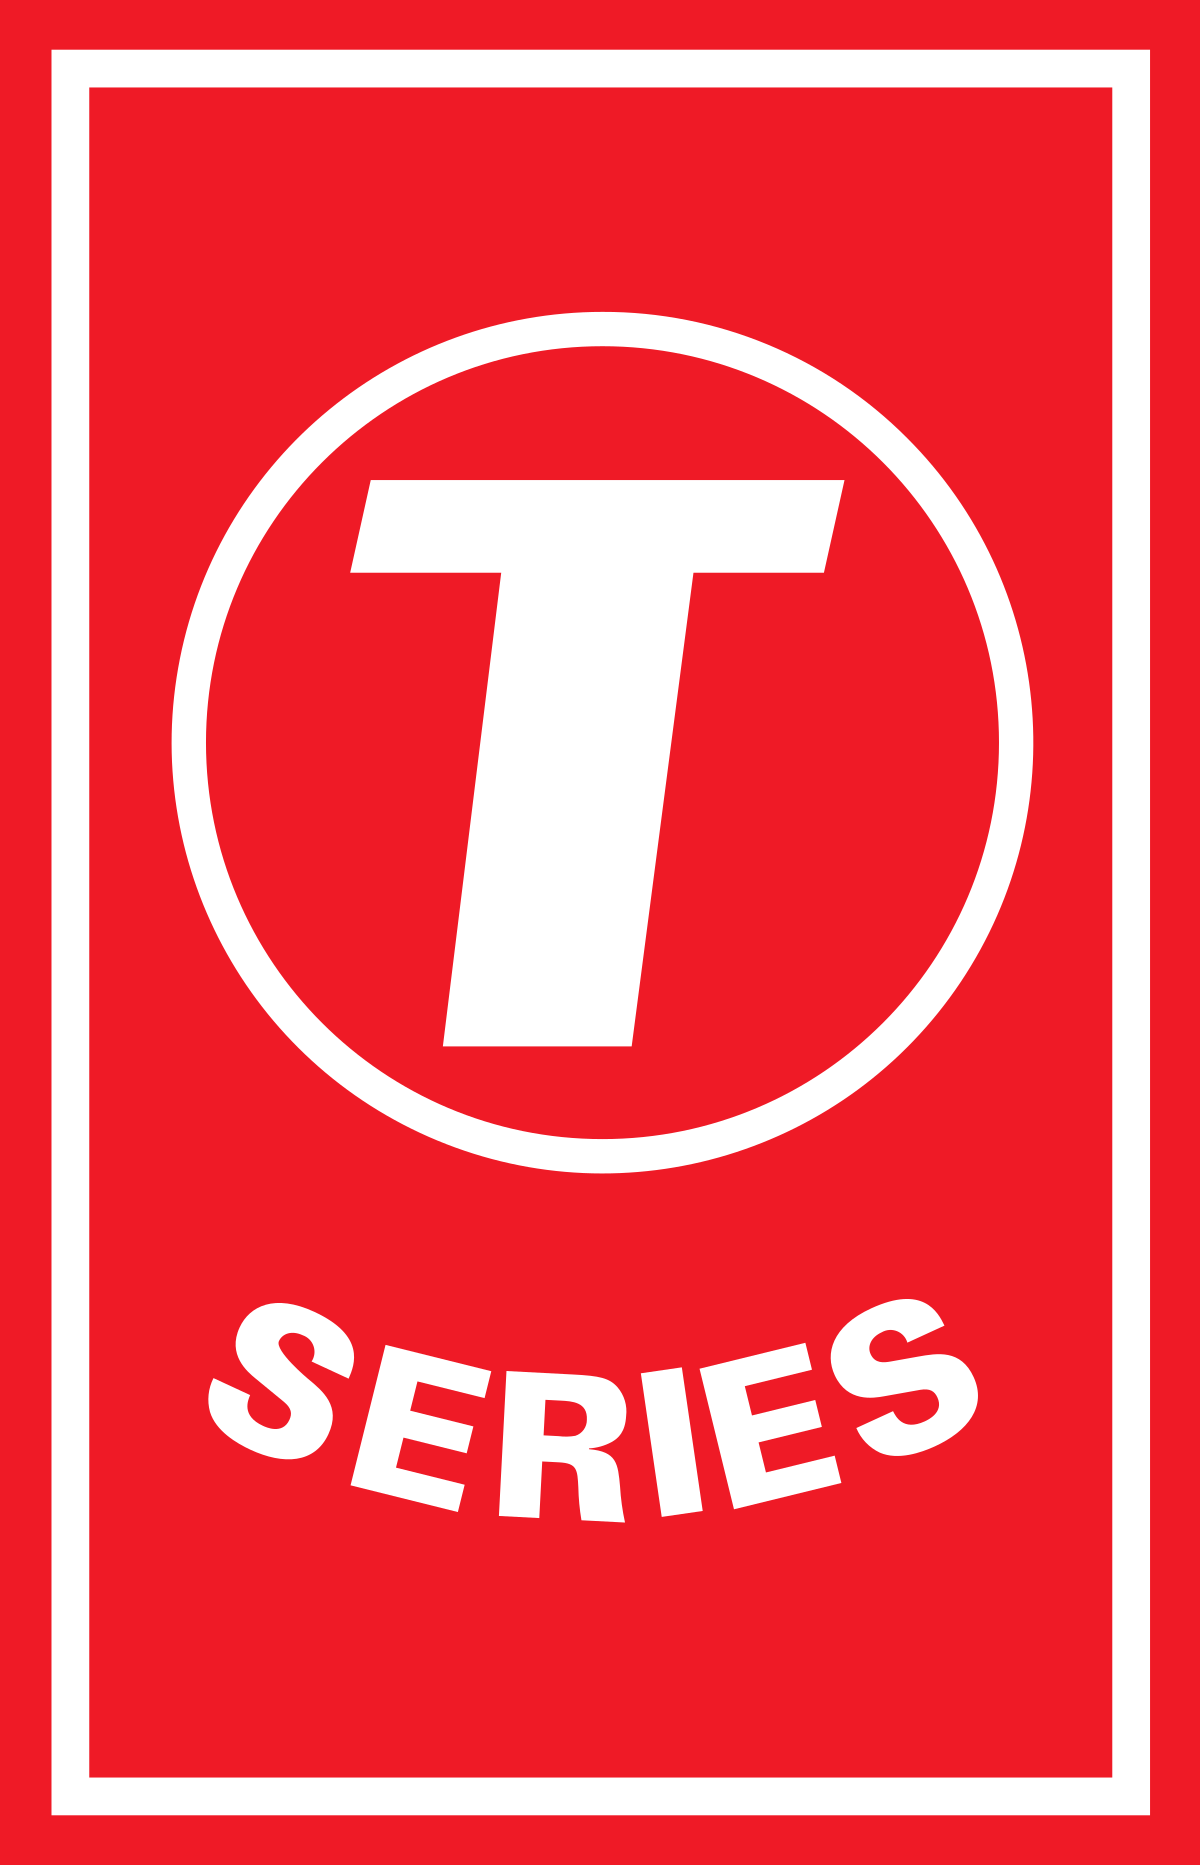 T-Series (company) (Part 4)